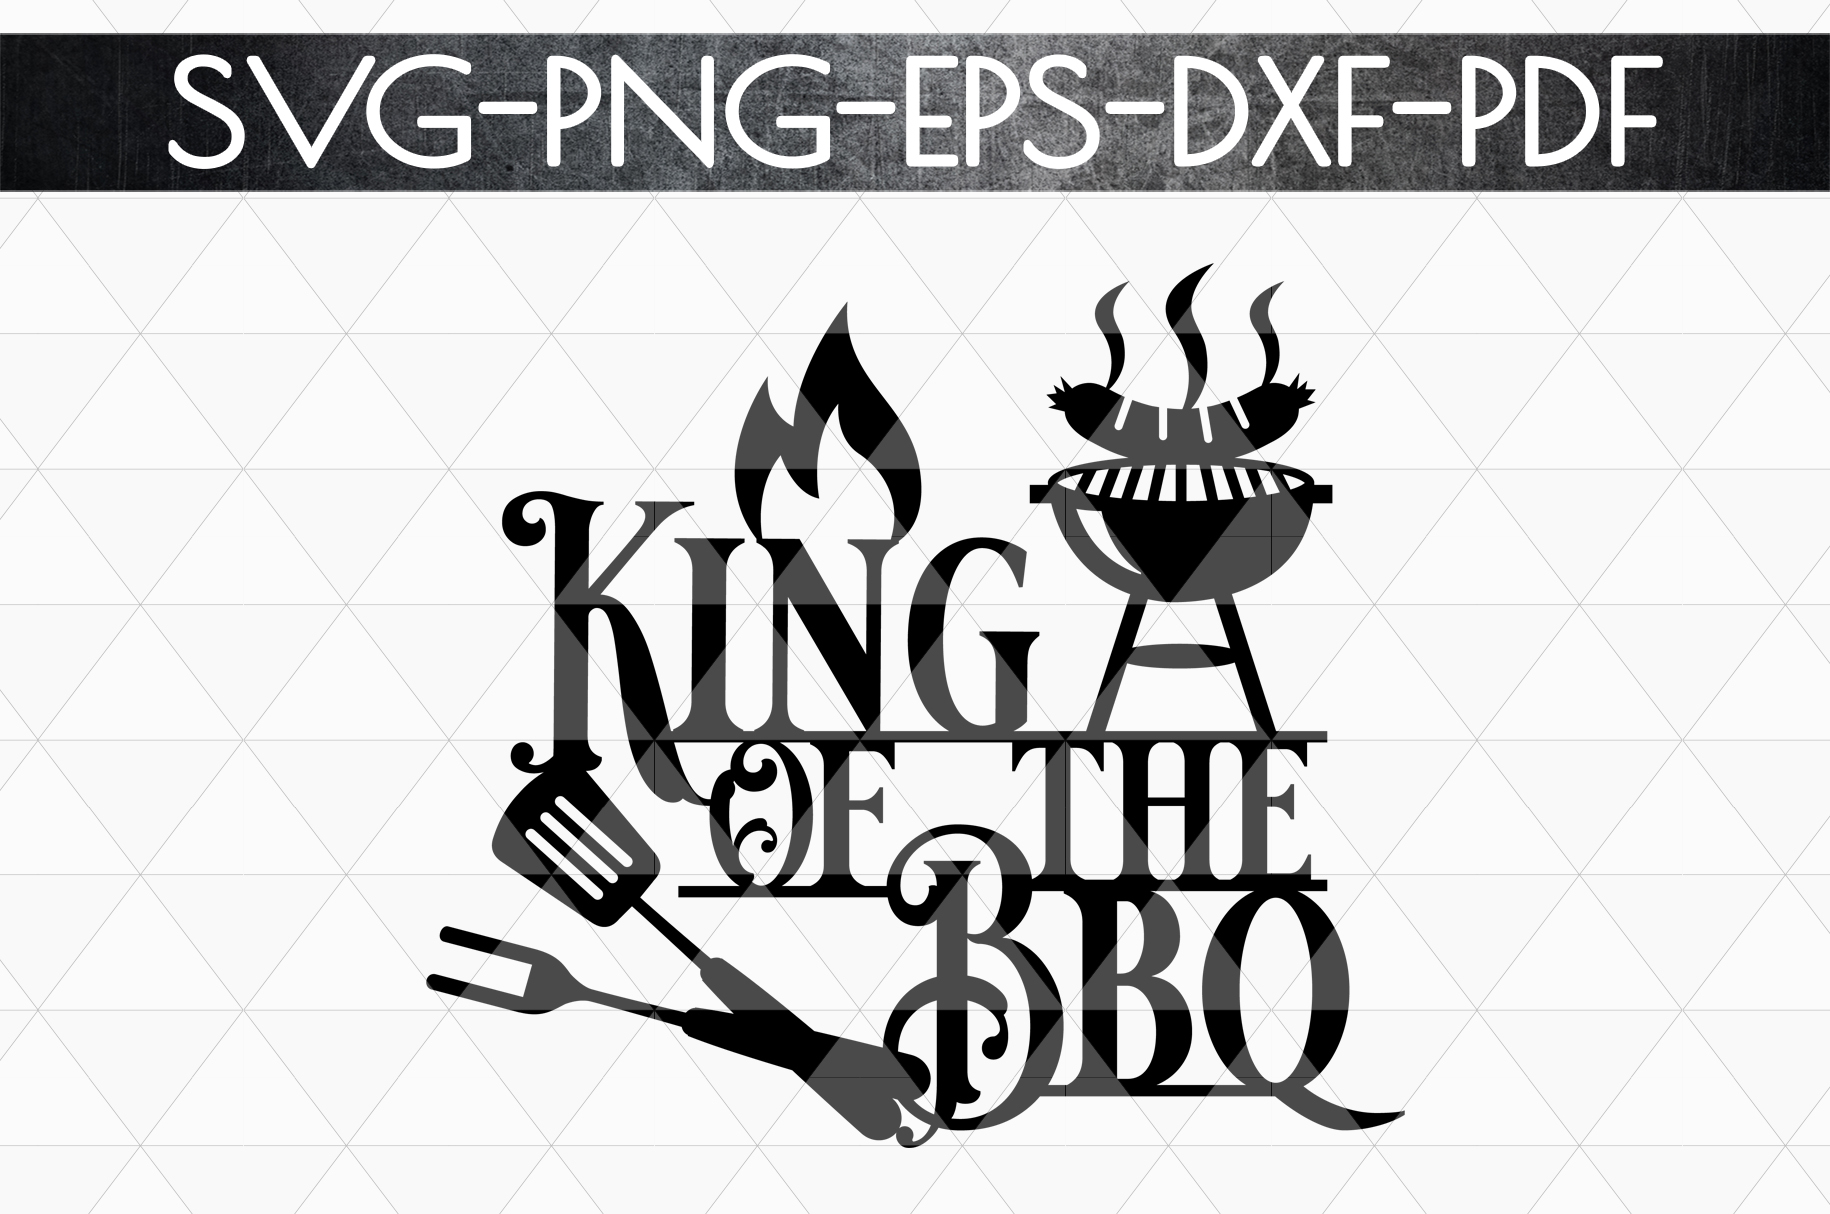 King Of The Bbq Sign Papercut Template, Summer Decor SVG DXF example image 3